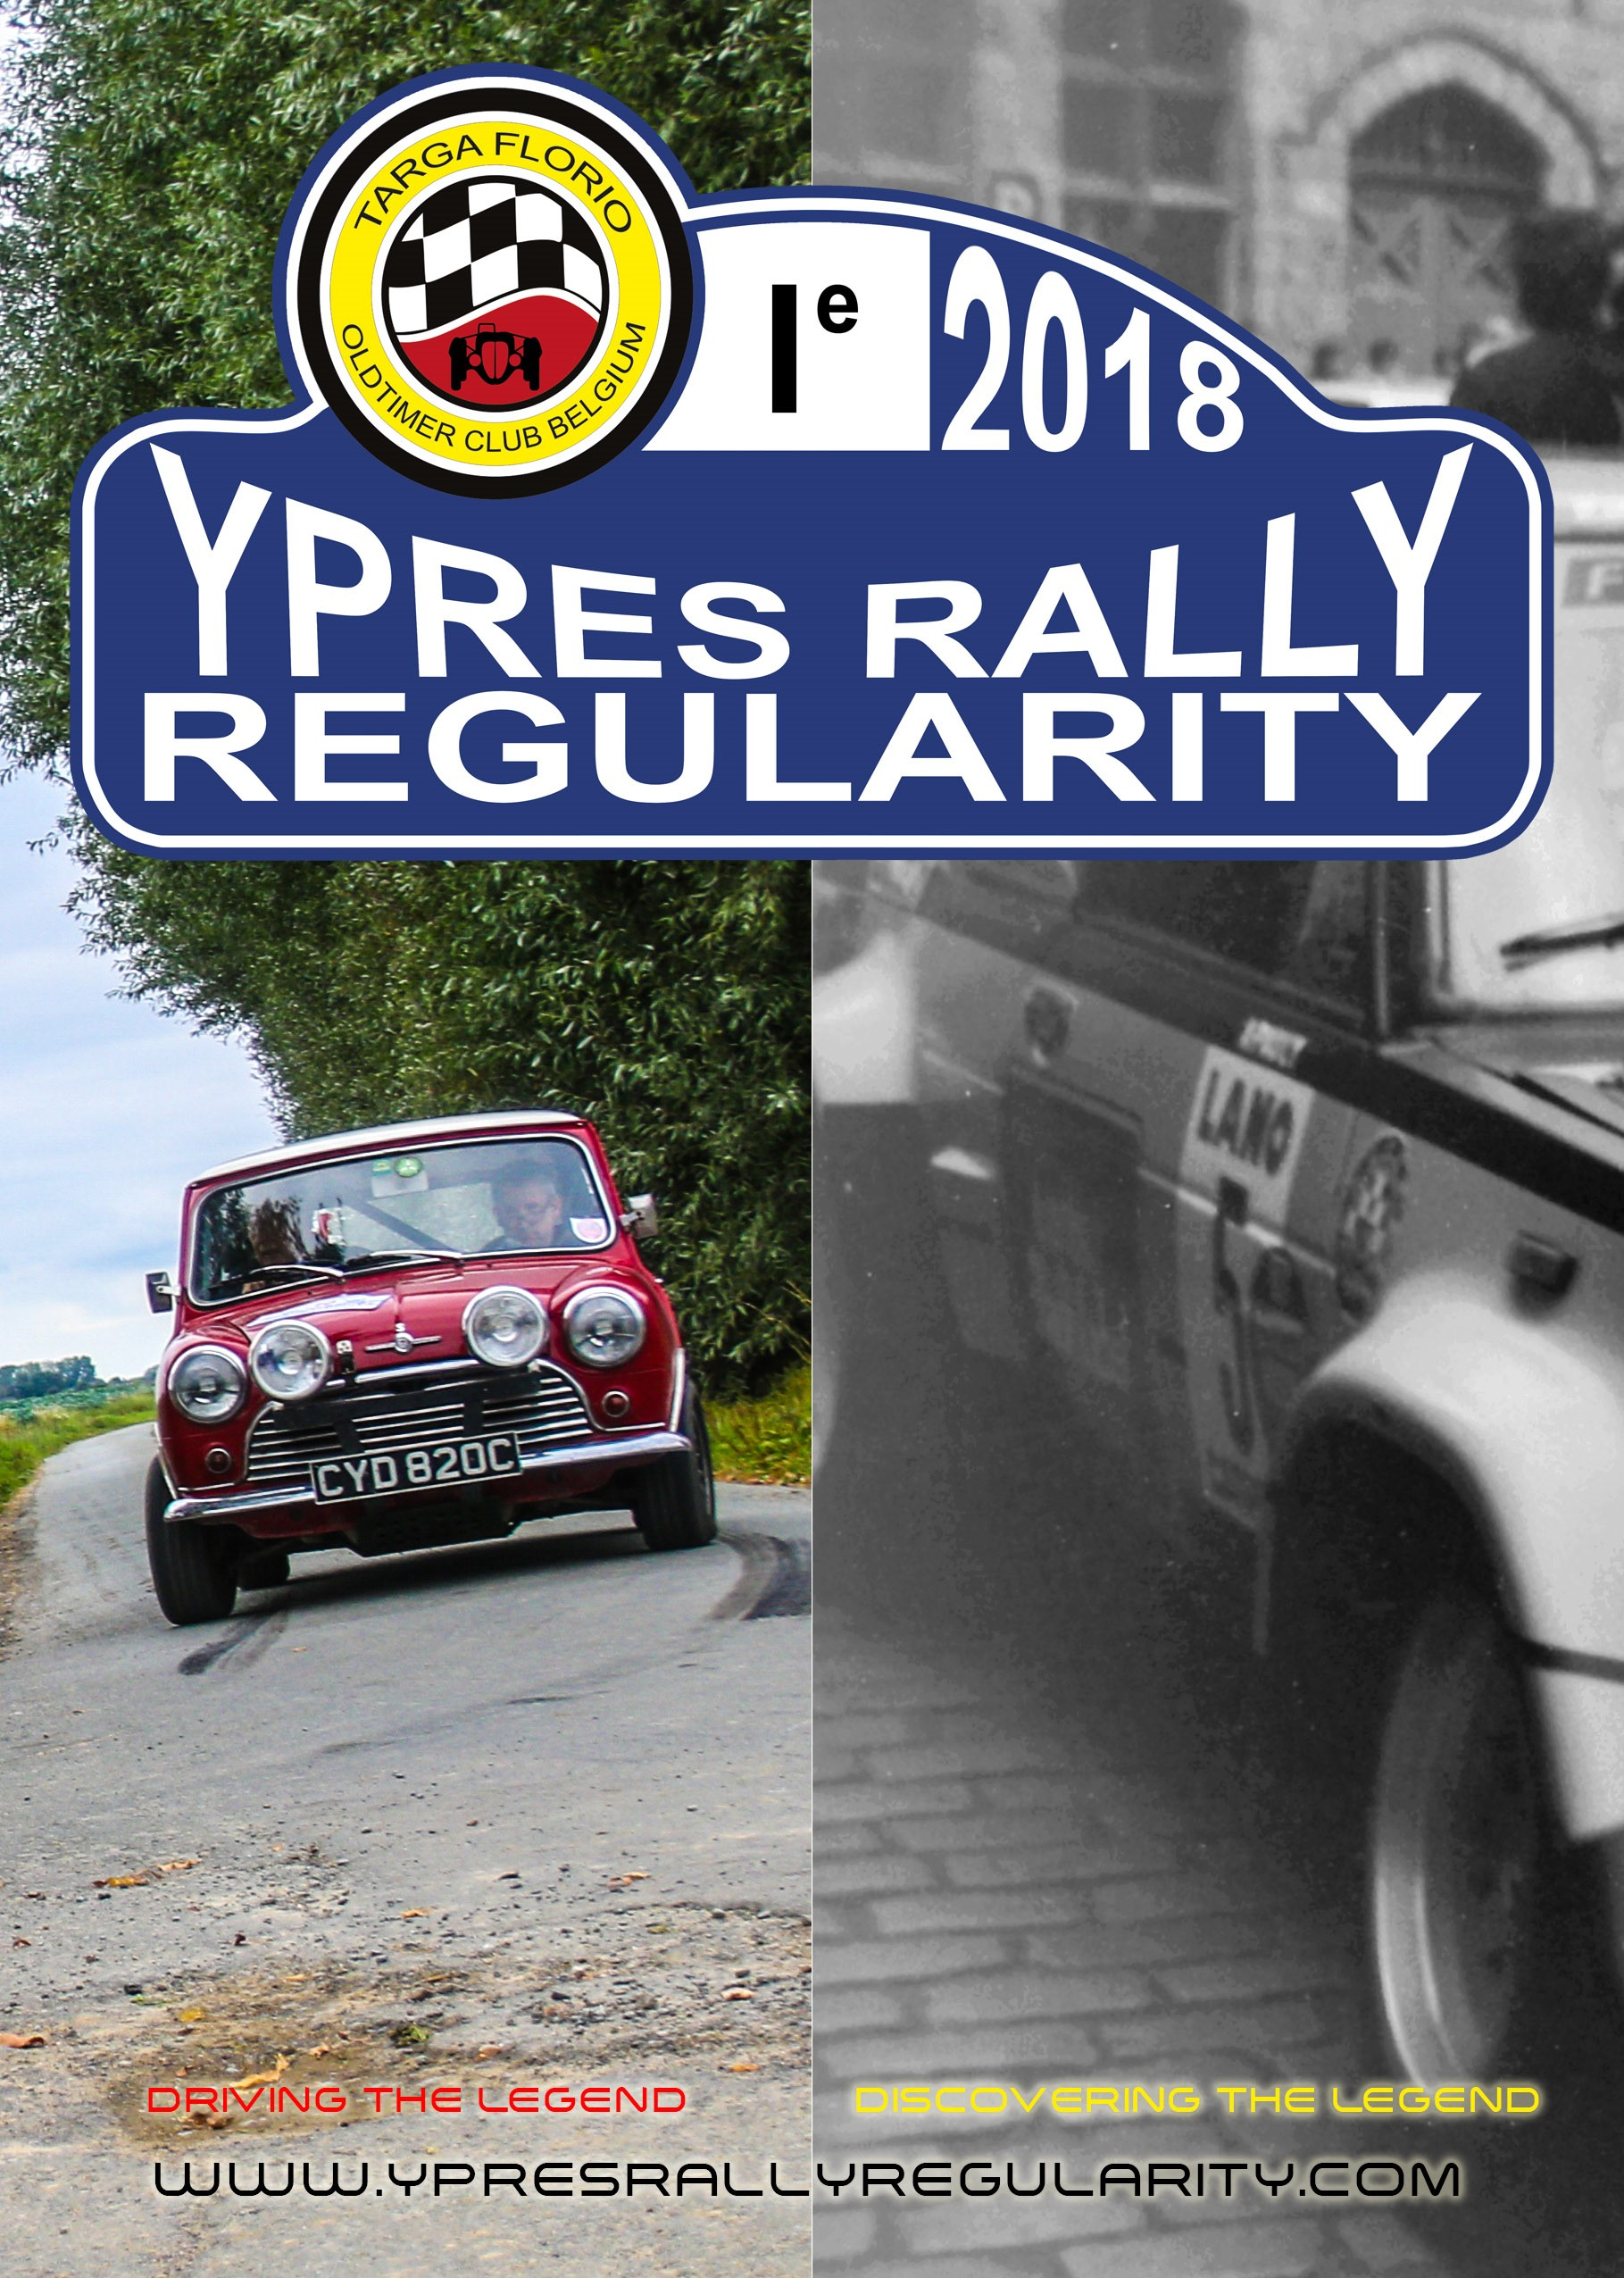 Ypres Rally Regularity 2018